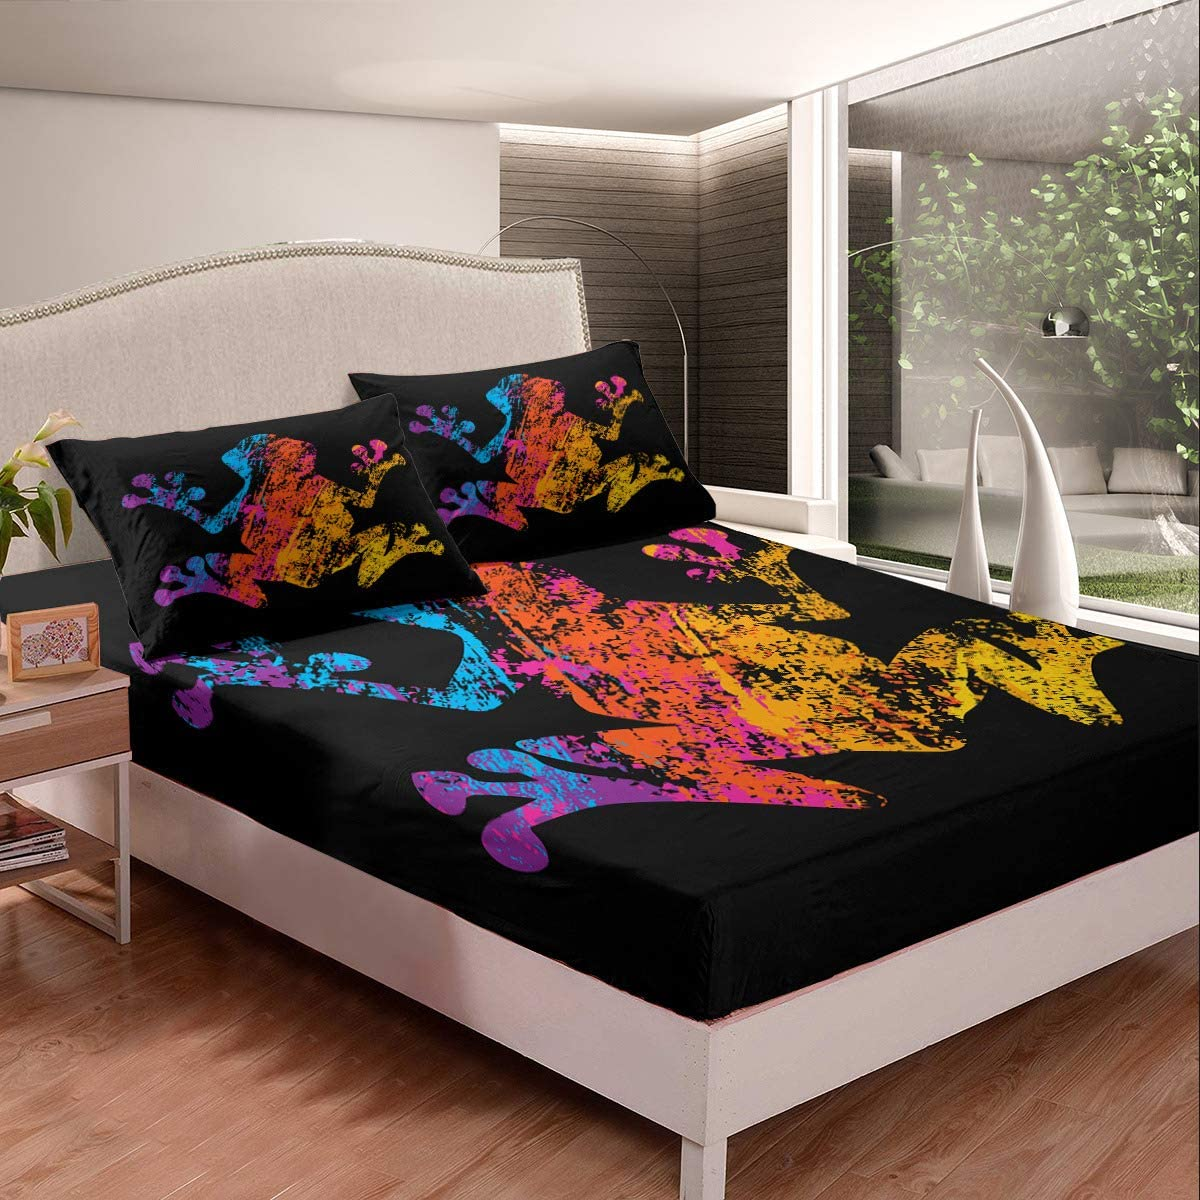 Castle Fairy Color Frog Dyeing Milwaukee Mall Bed B Ultra Black Soft Full Max 62% OFF Sheet